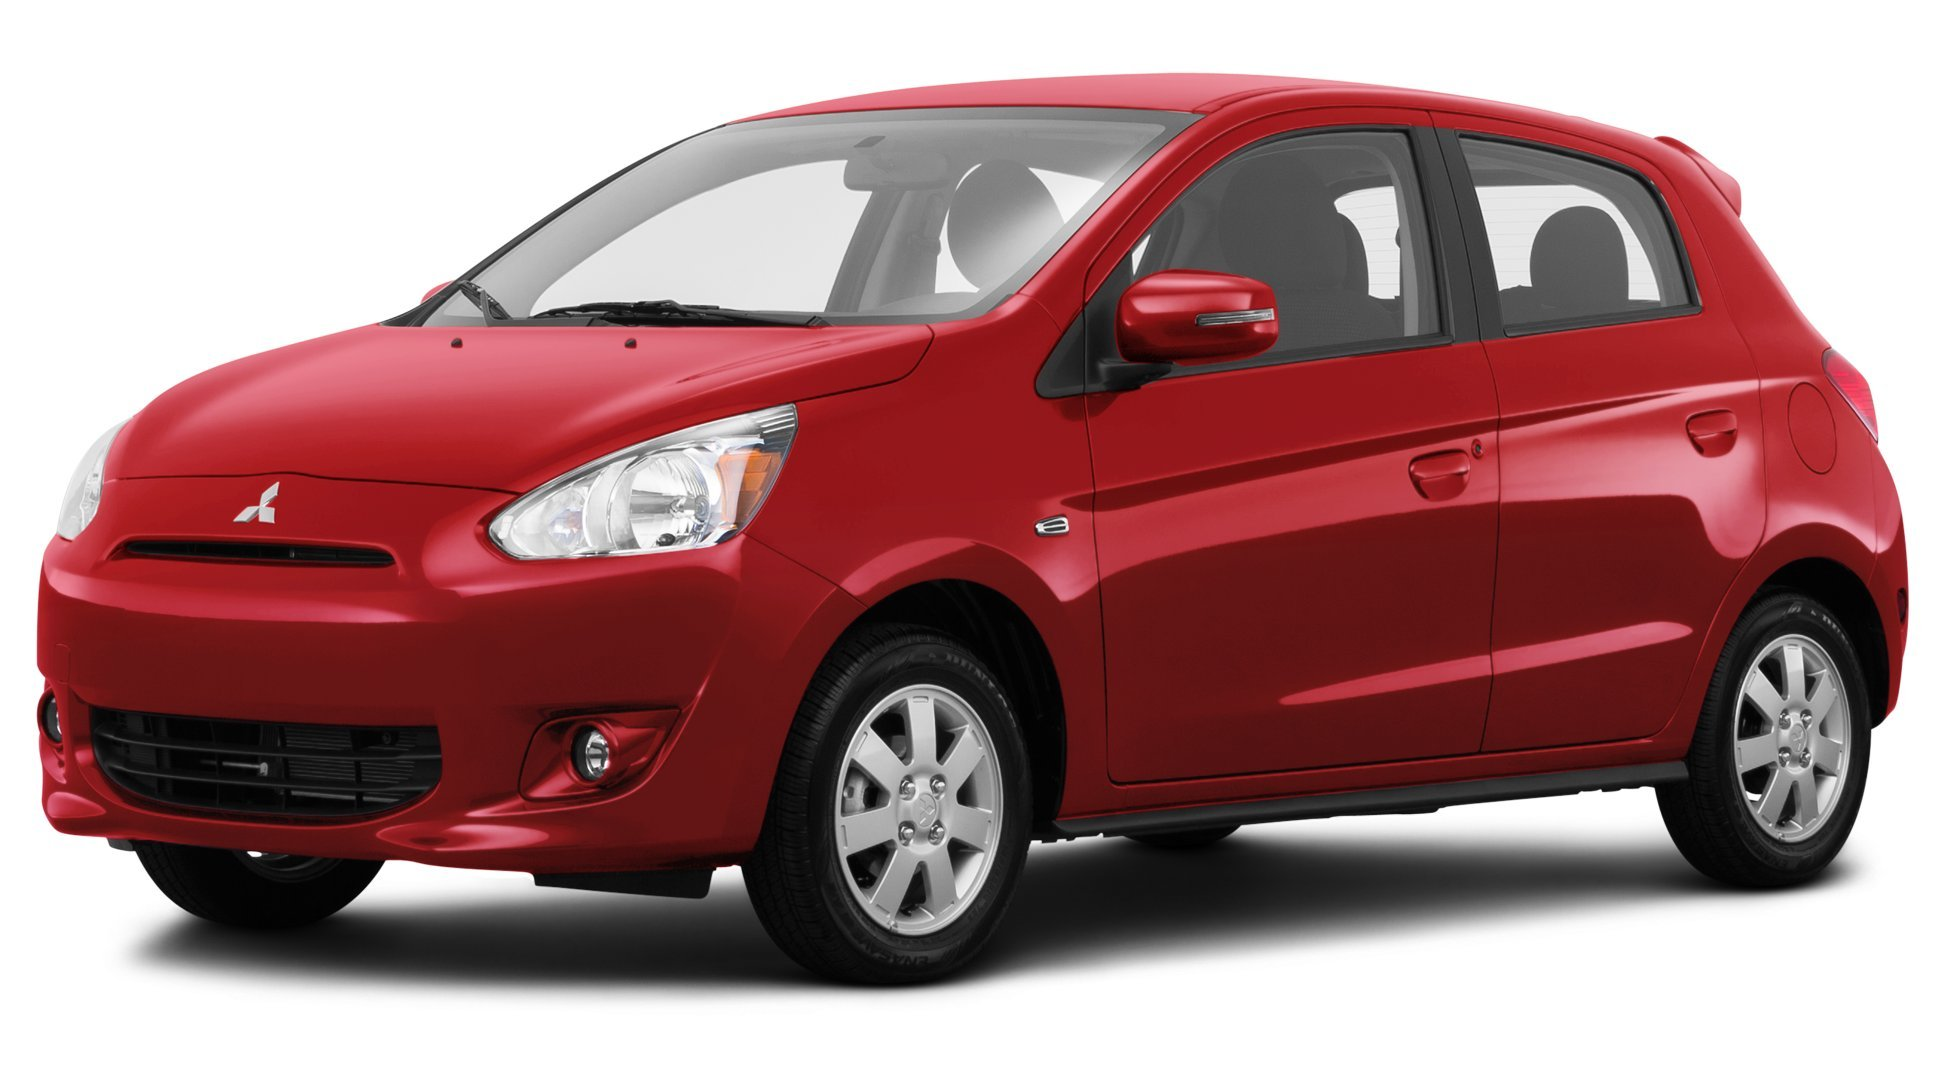 2015 mitsubishi mirage de 4 door hatchback cvt